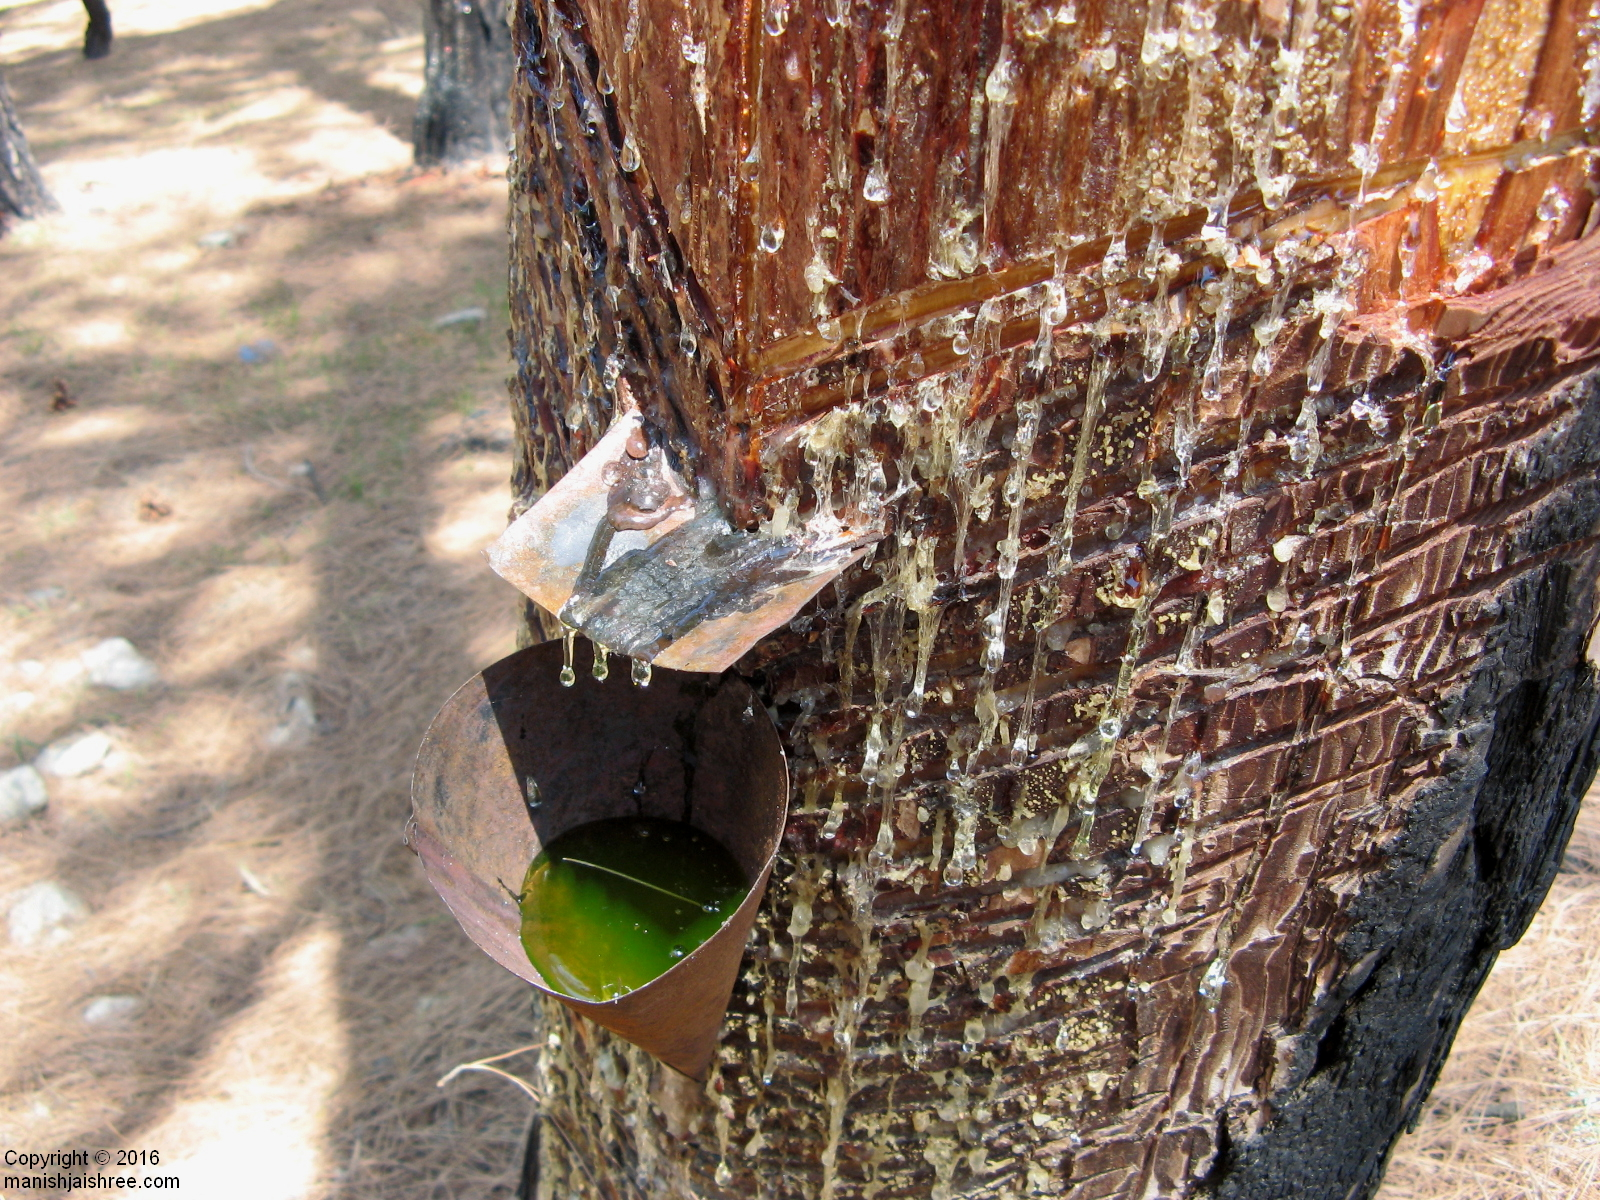 Collecting resin from a pine tree, Binsar